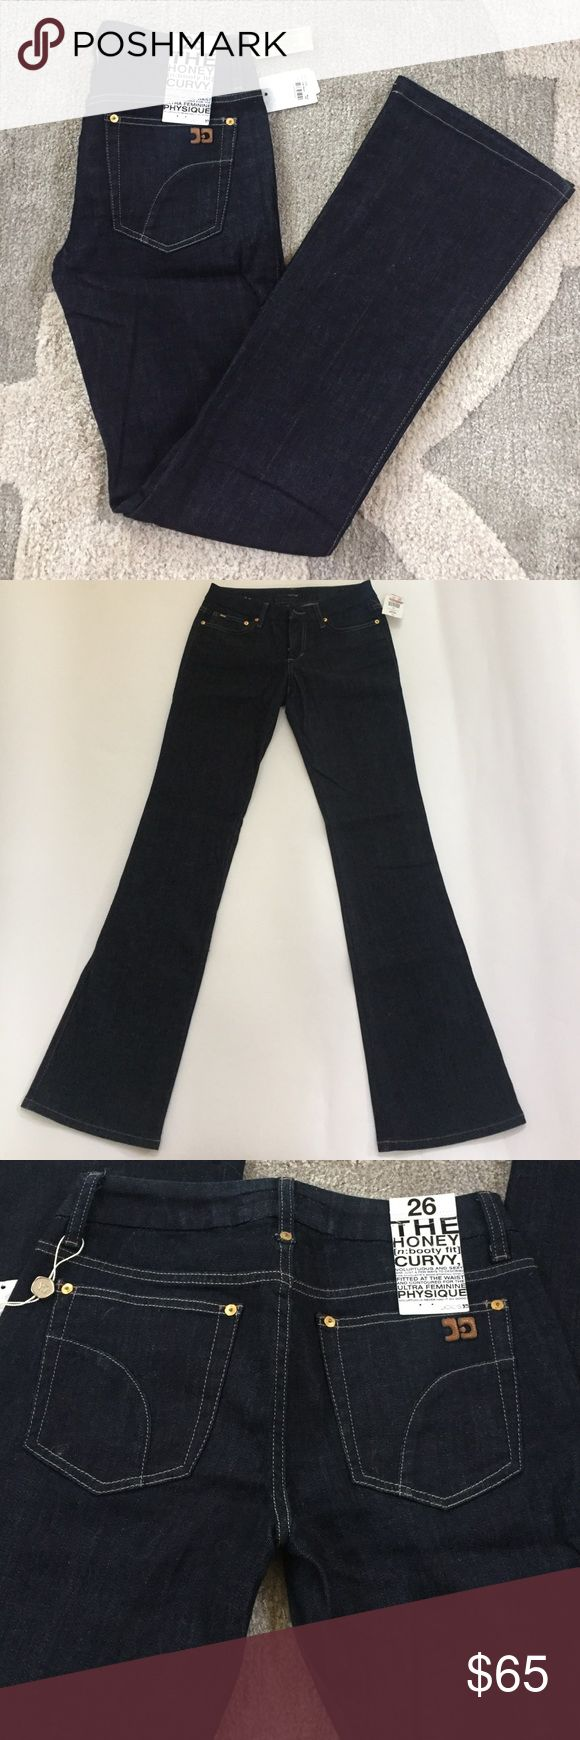 Joes Jeans The Honey Bootcut Curvy Jean Joes Jeans The Honey Bootcut Curvy Jean, dark wash, very comfortable, soft denim feel, new with tags, never worn, smoke free home, excellent, perfect condition Joe's Jeans Jeans Boot Cut